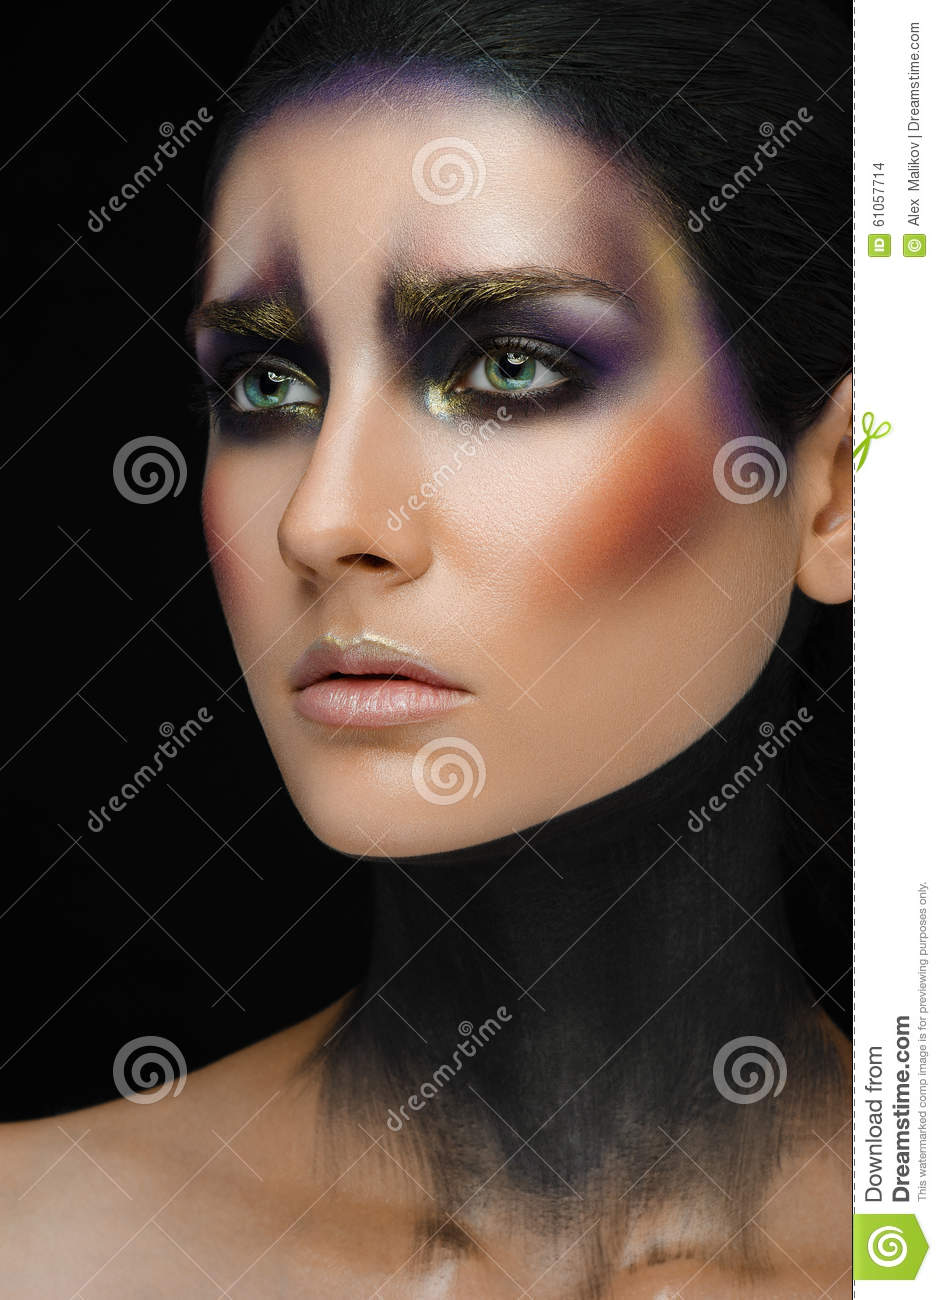 Makeup art and beautiful model theme: beautiful girl with a creative make-up black-and-purple and gold colors on a black backgroun